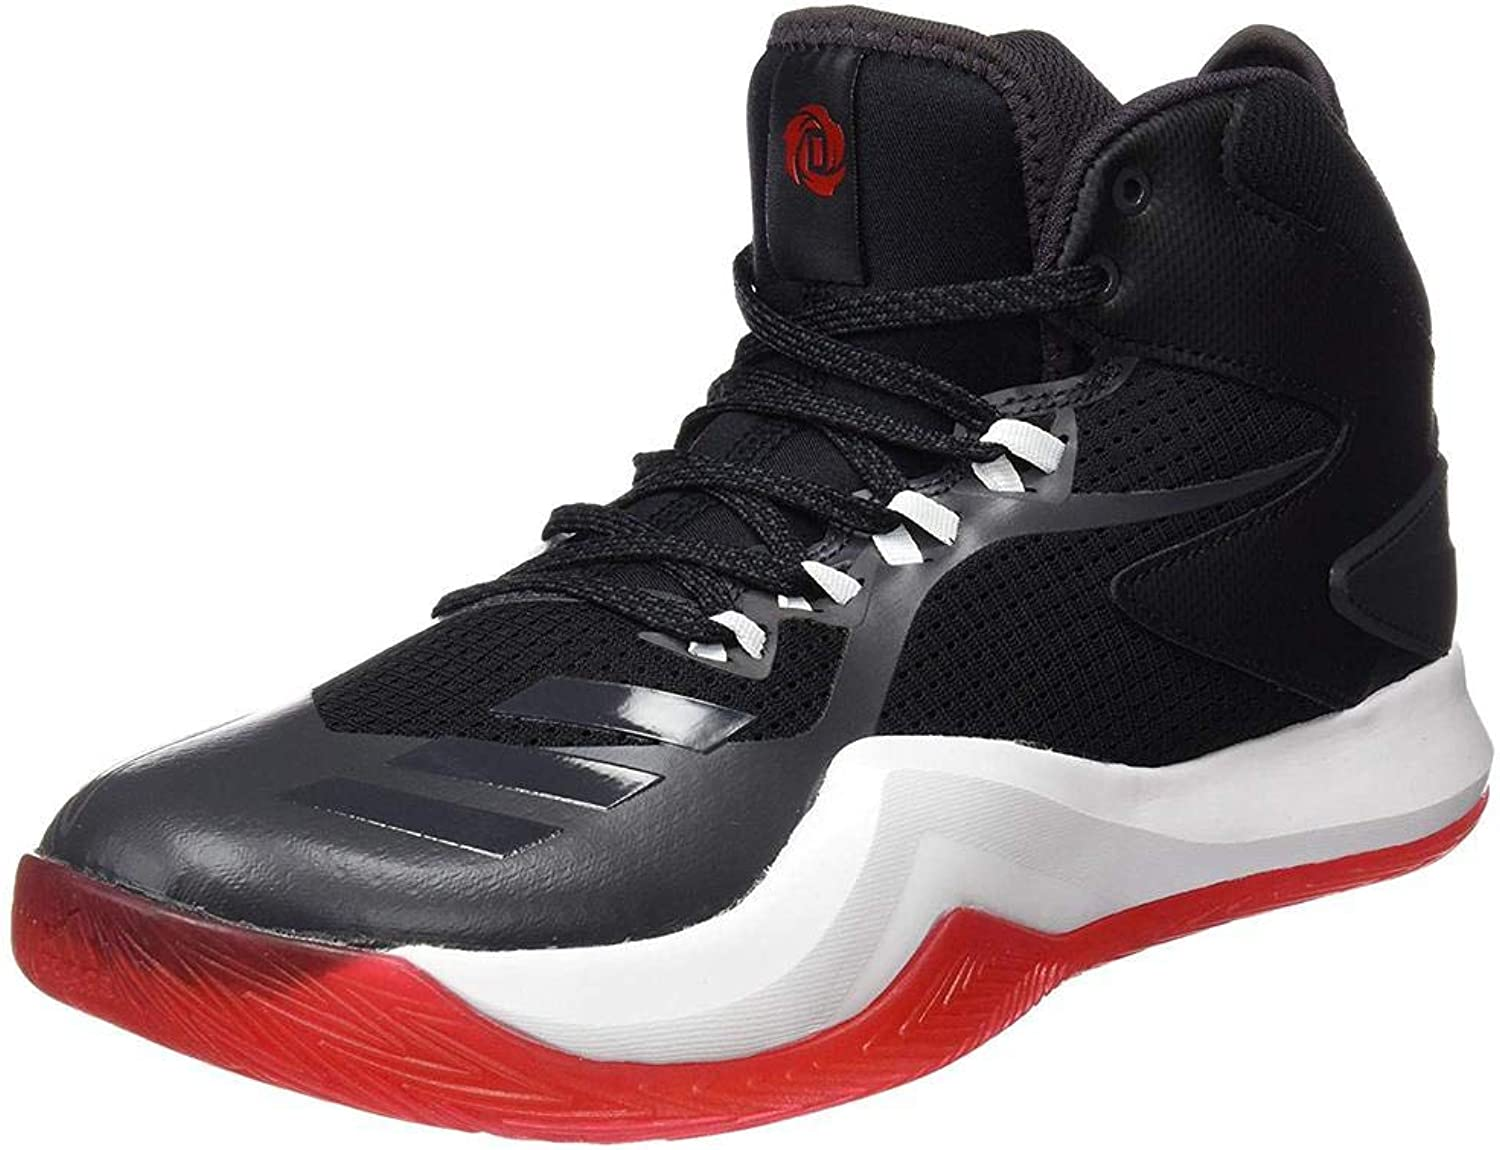 Adidas Men's's D pink Dominate Iv Basketball shoes